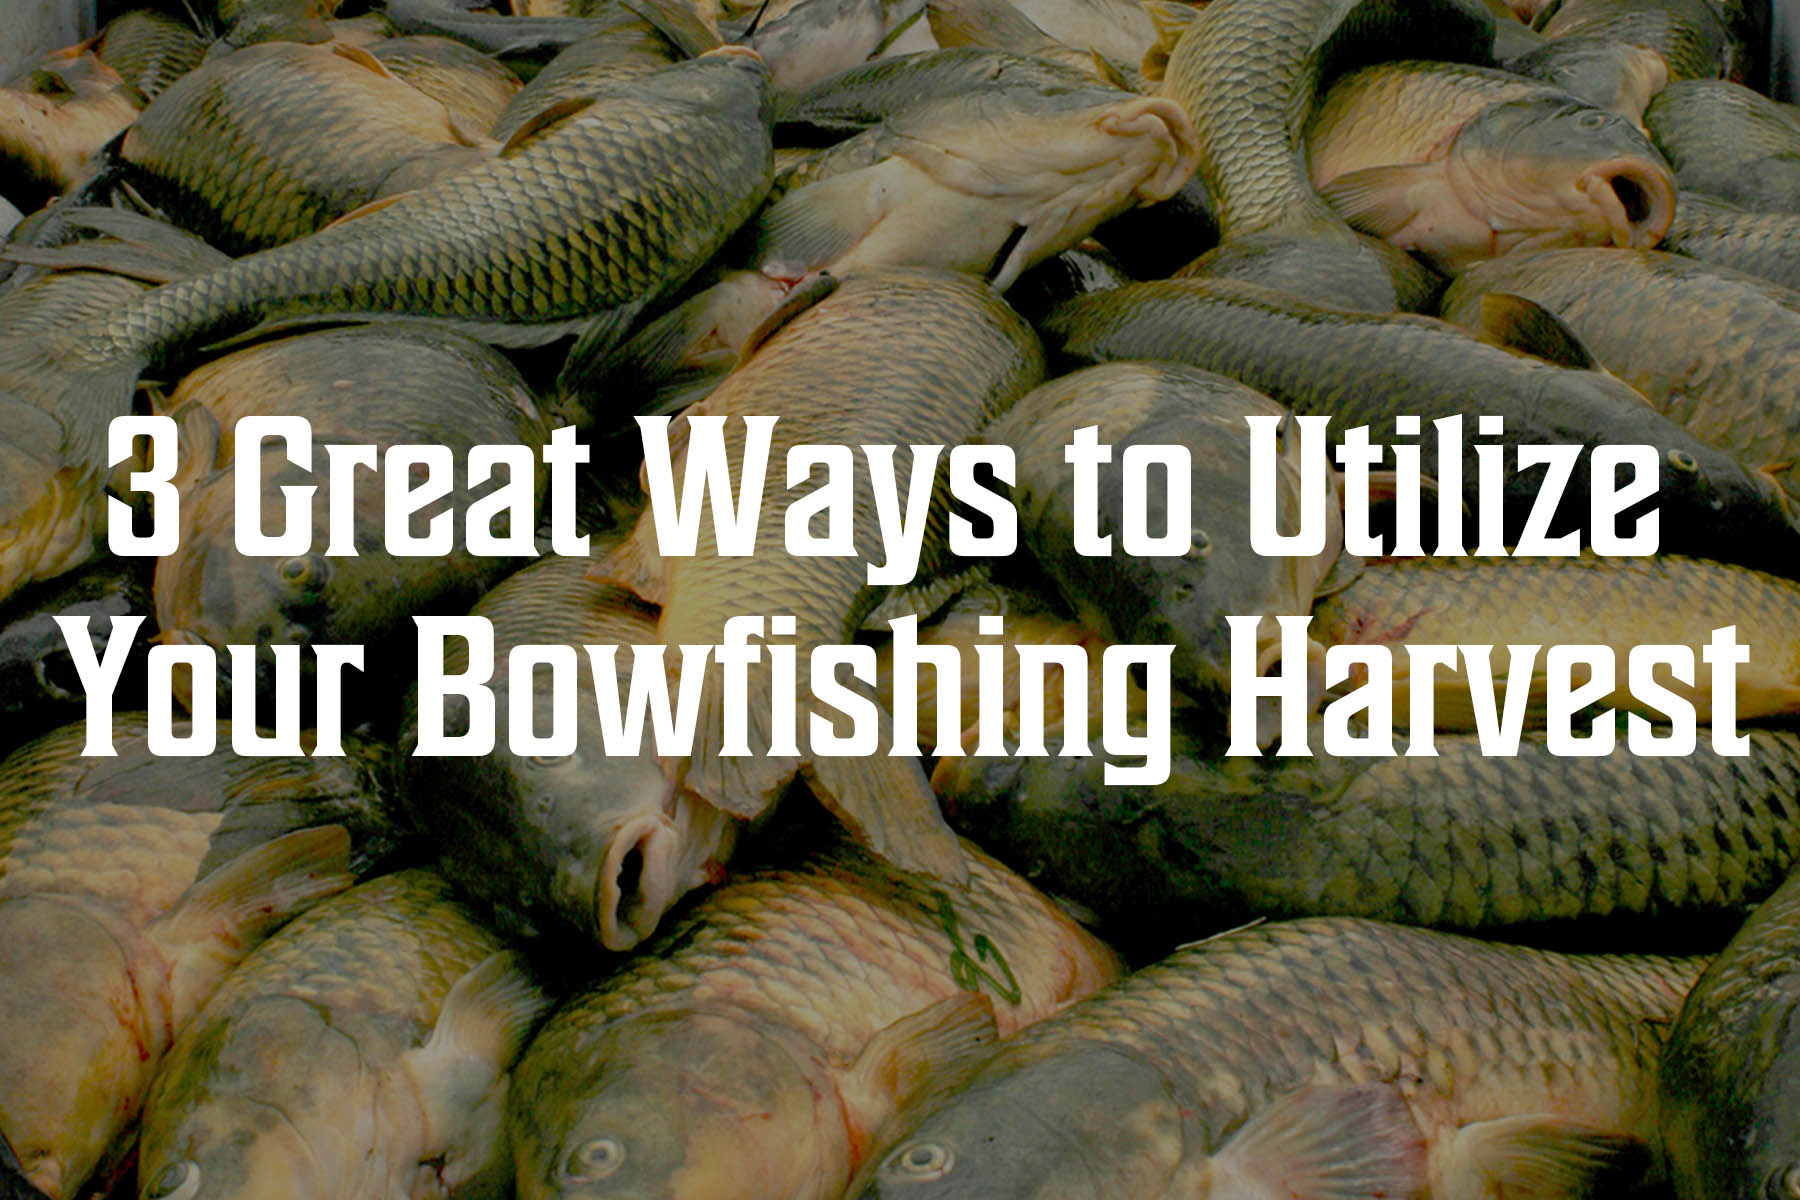 3 Great Ways to Utilize Your Bowfishing Harvest